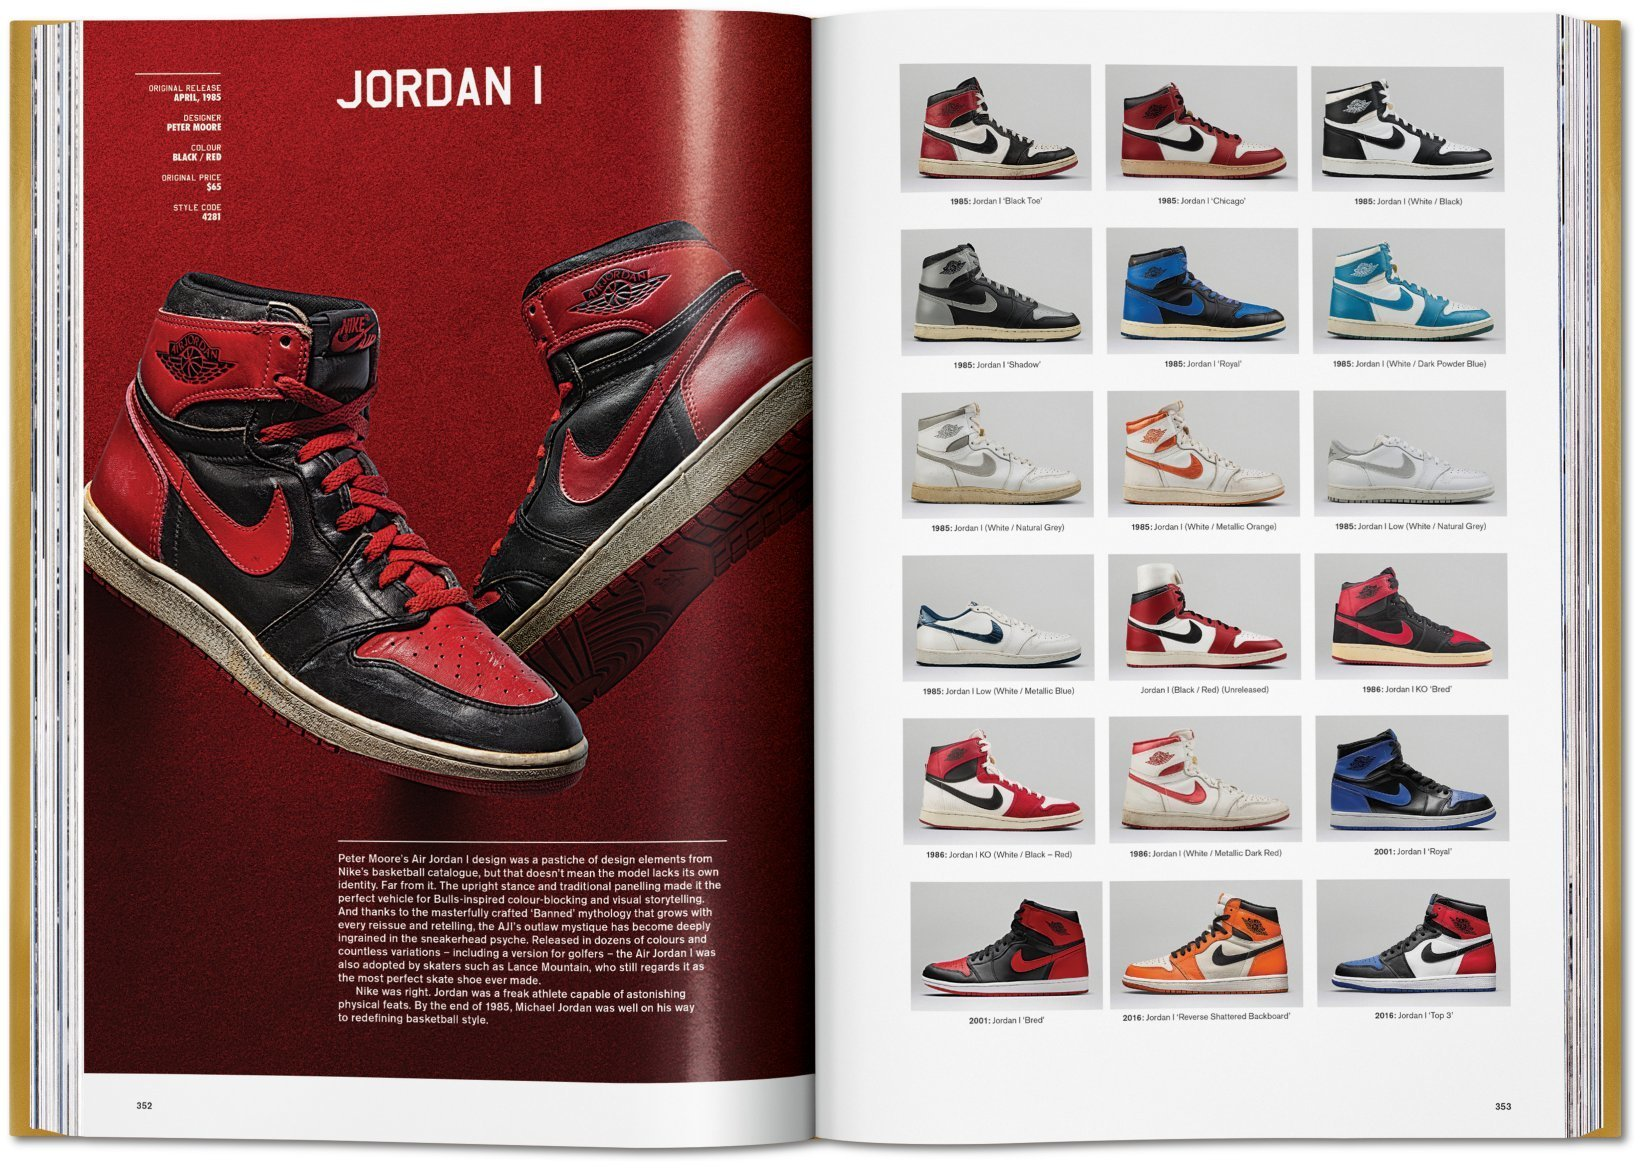 By Simon Wood from Sneaker Freaker. The Ultimate Sneaker Book copyright Taschen 2018